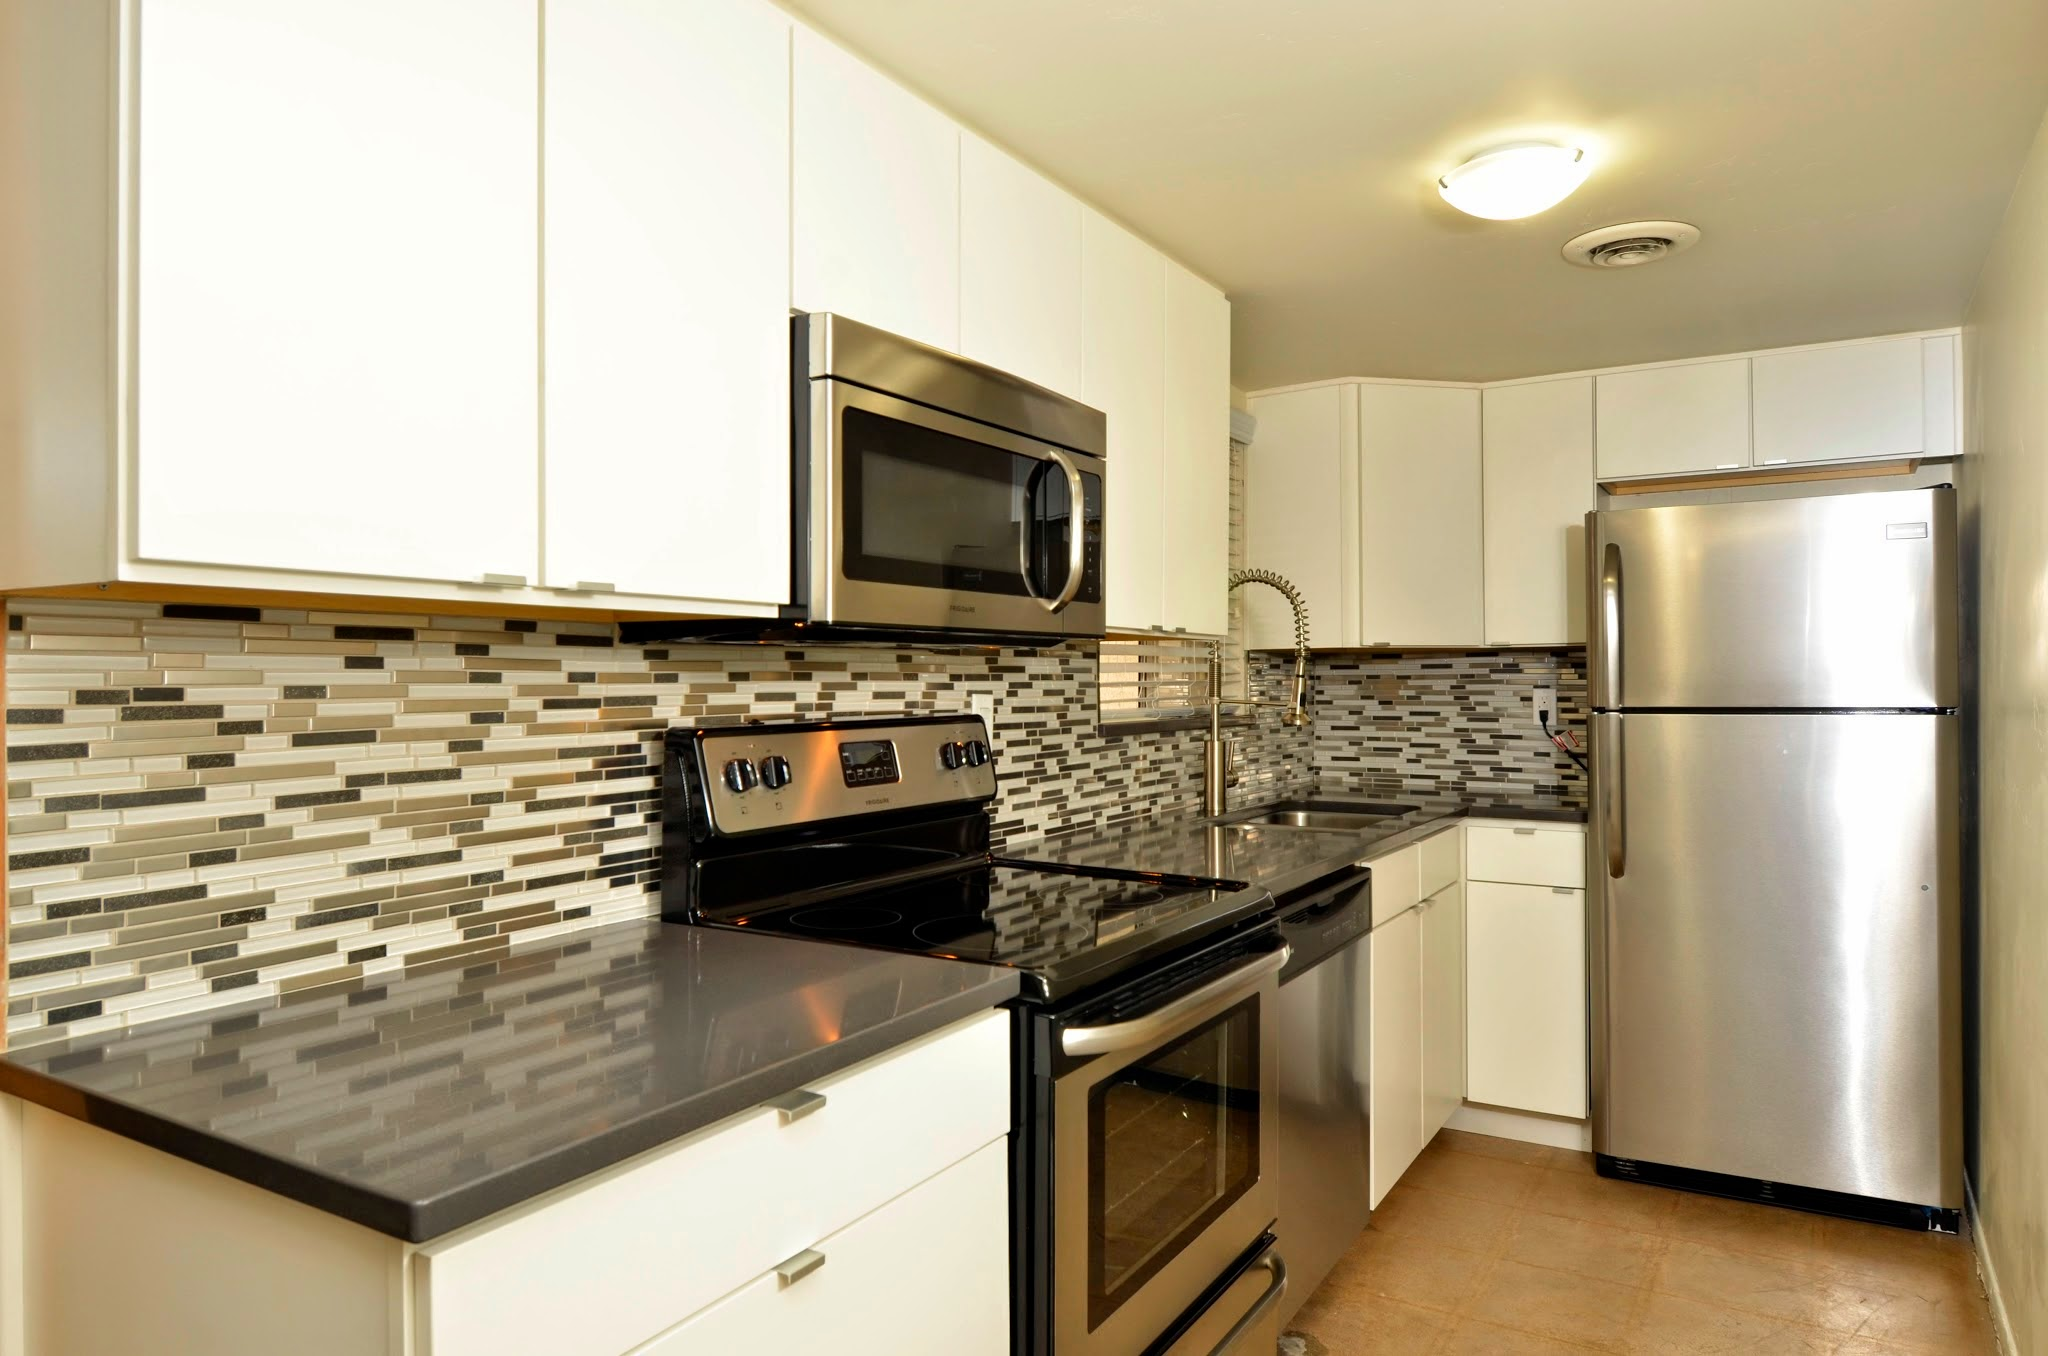 Contemporary Kitchen with Backsplash at The Winfield of Scottsdale Apartments in Scottsdale, Arizona